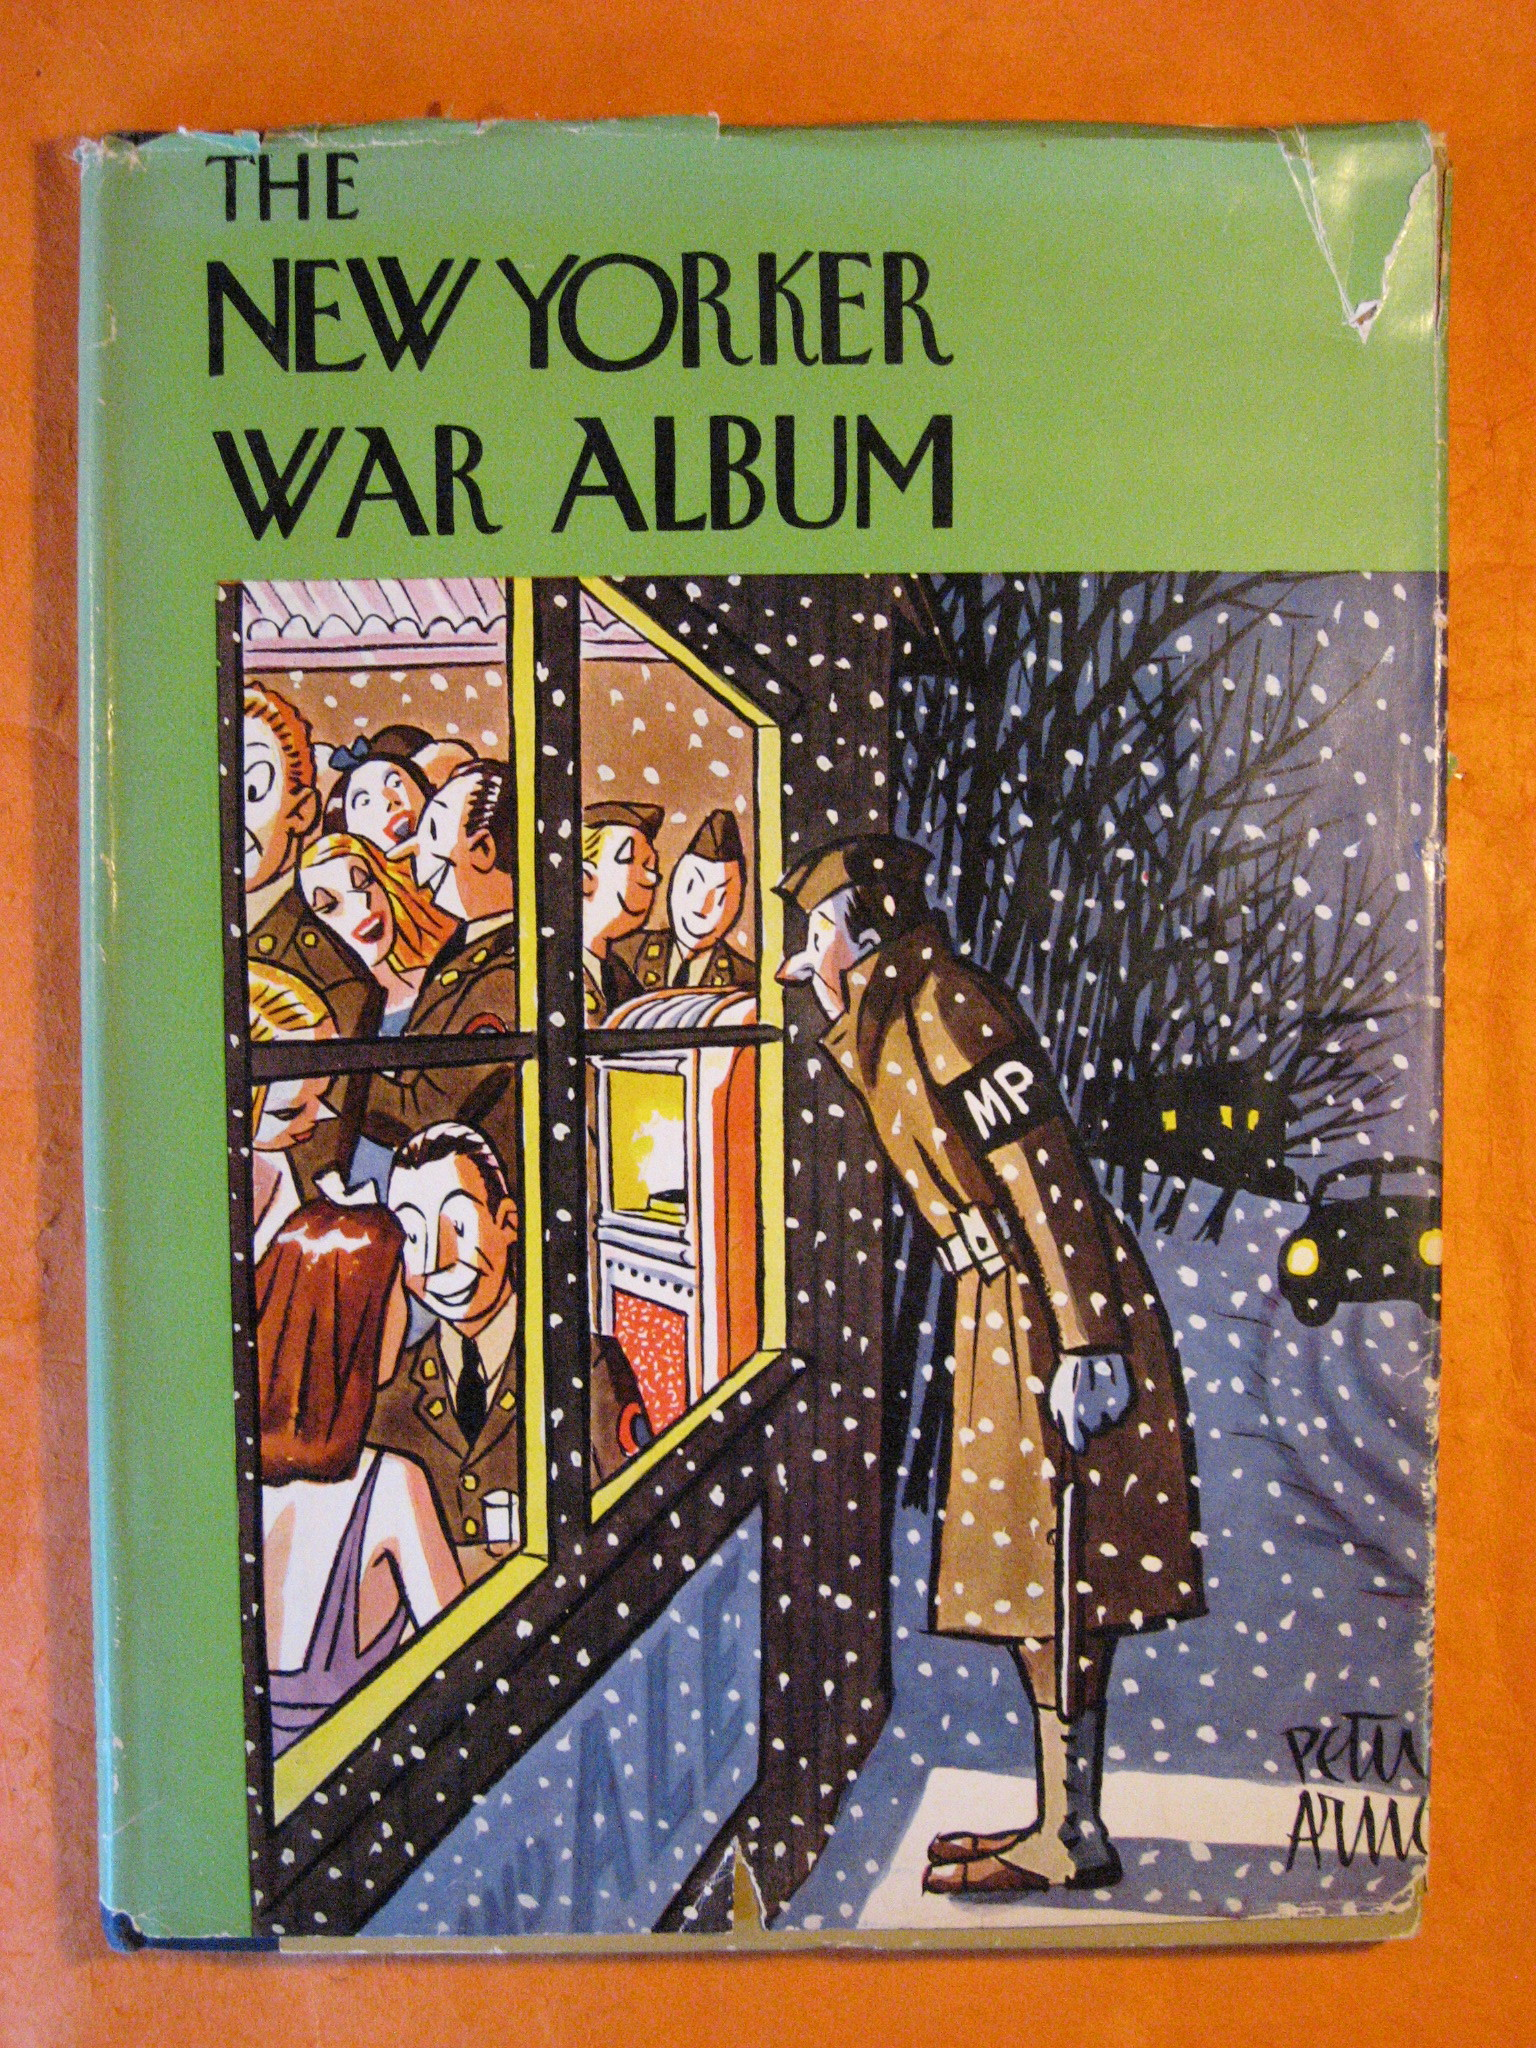 The New Yorker War Album